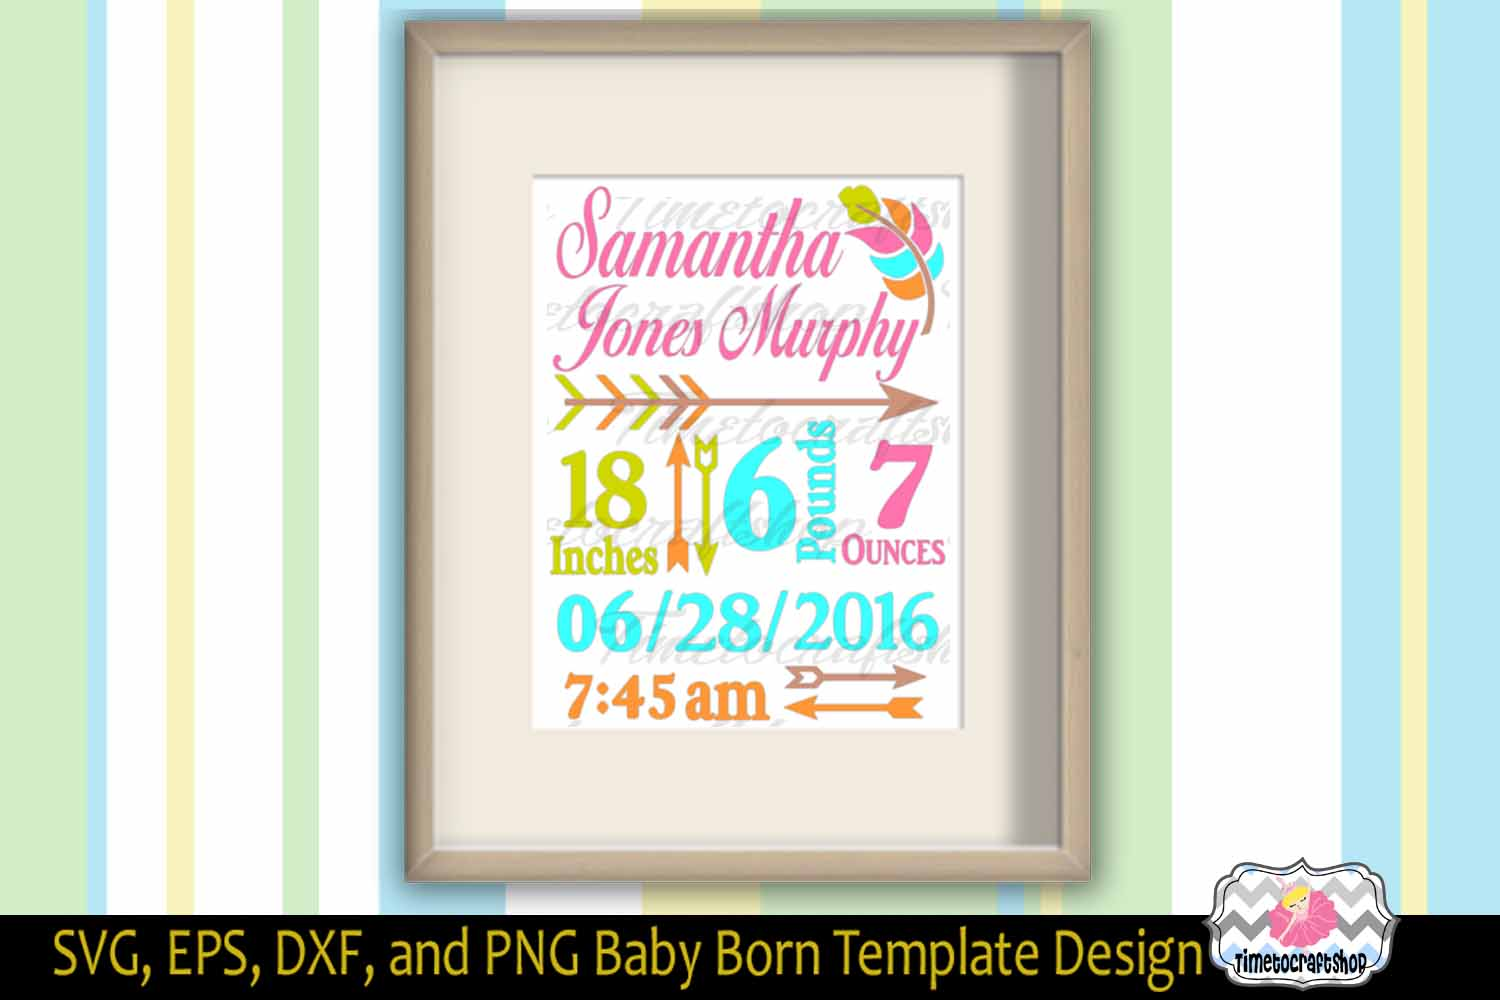 Svg, Dxf, Png & Eps Cutting Files Baby Birth Announcement Template For  Cricut And